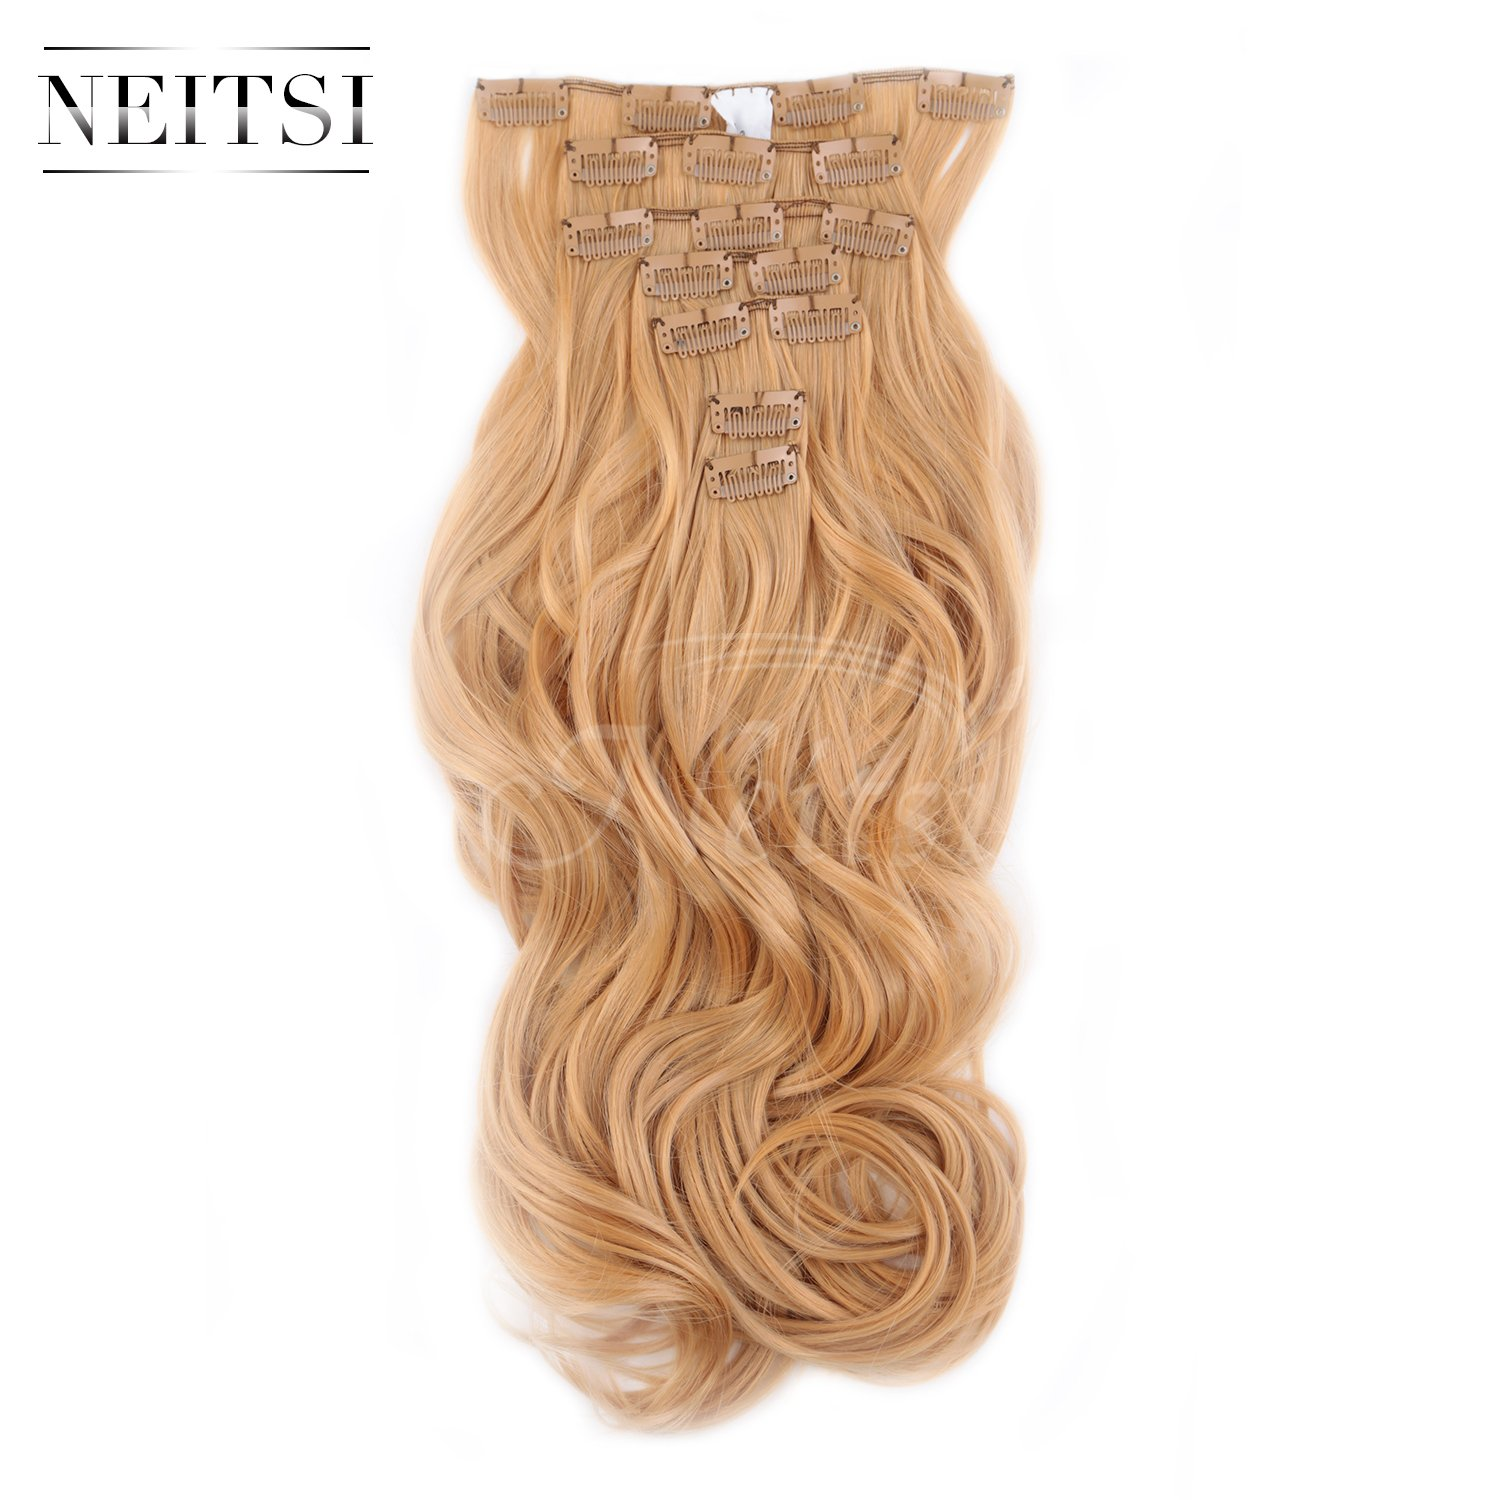 Neitsi 22 7pcs 140g Curly Wave Synthetic Clips in on Hair Extensions Full Head Set HairPieces 14Colors avaliable (P18/22#) LTD